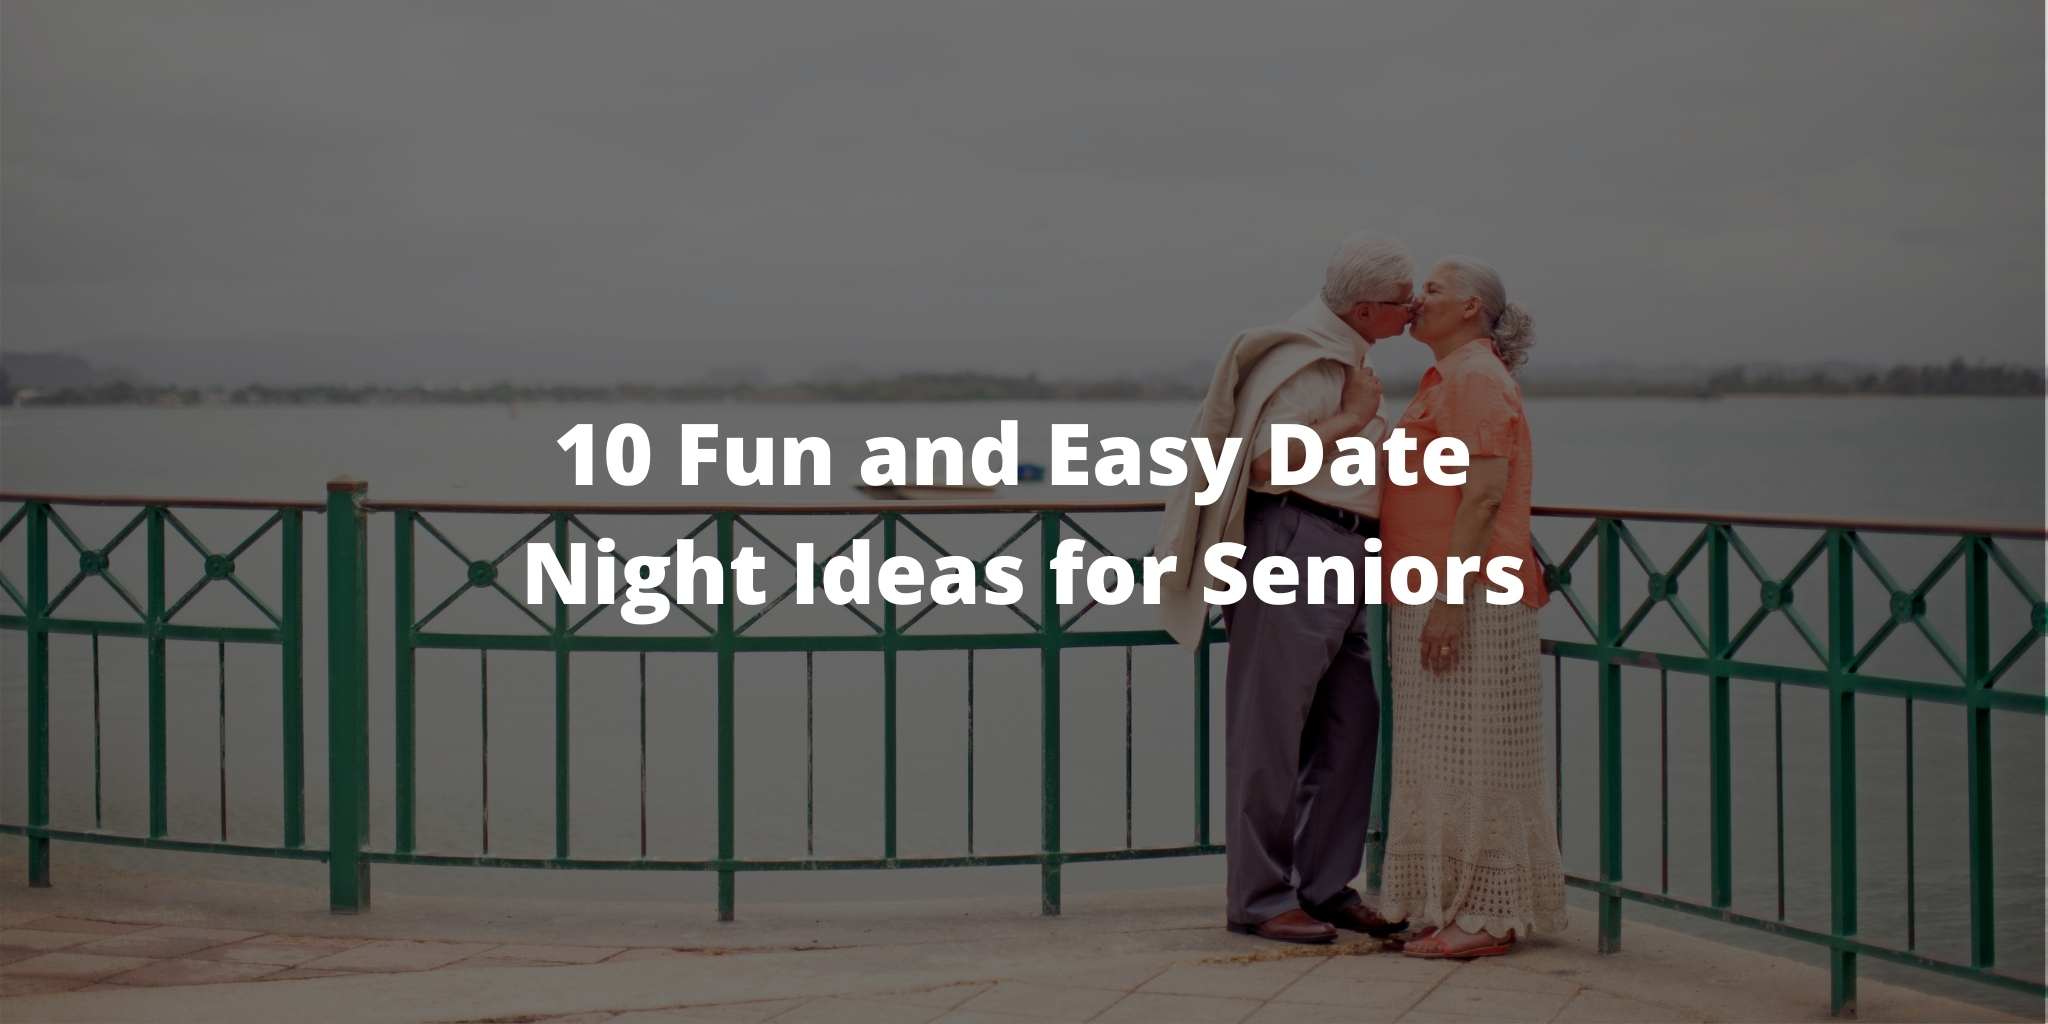 10 Fun and Easy Date Night Ideas for Seniors